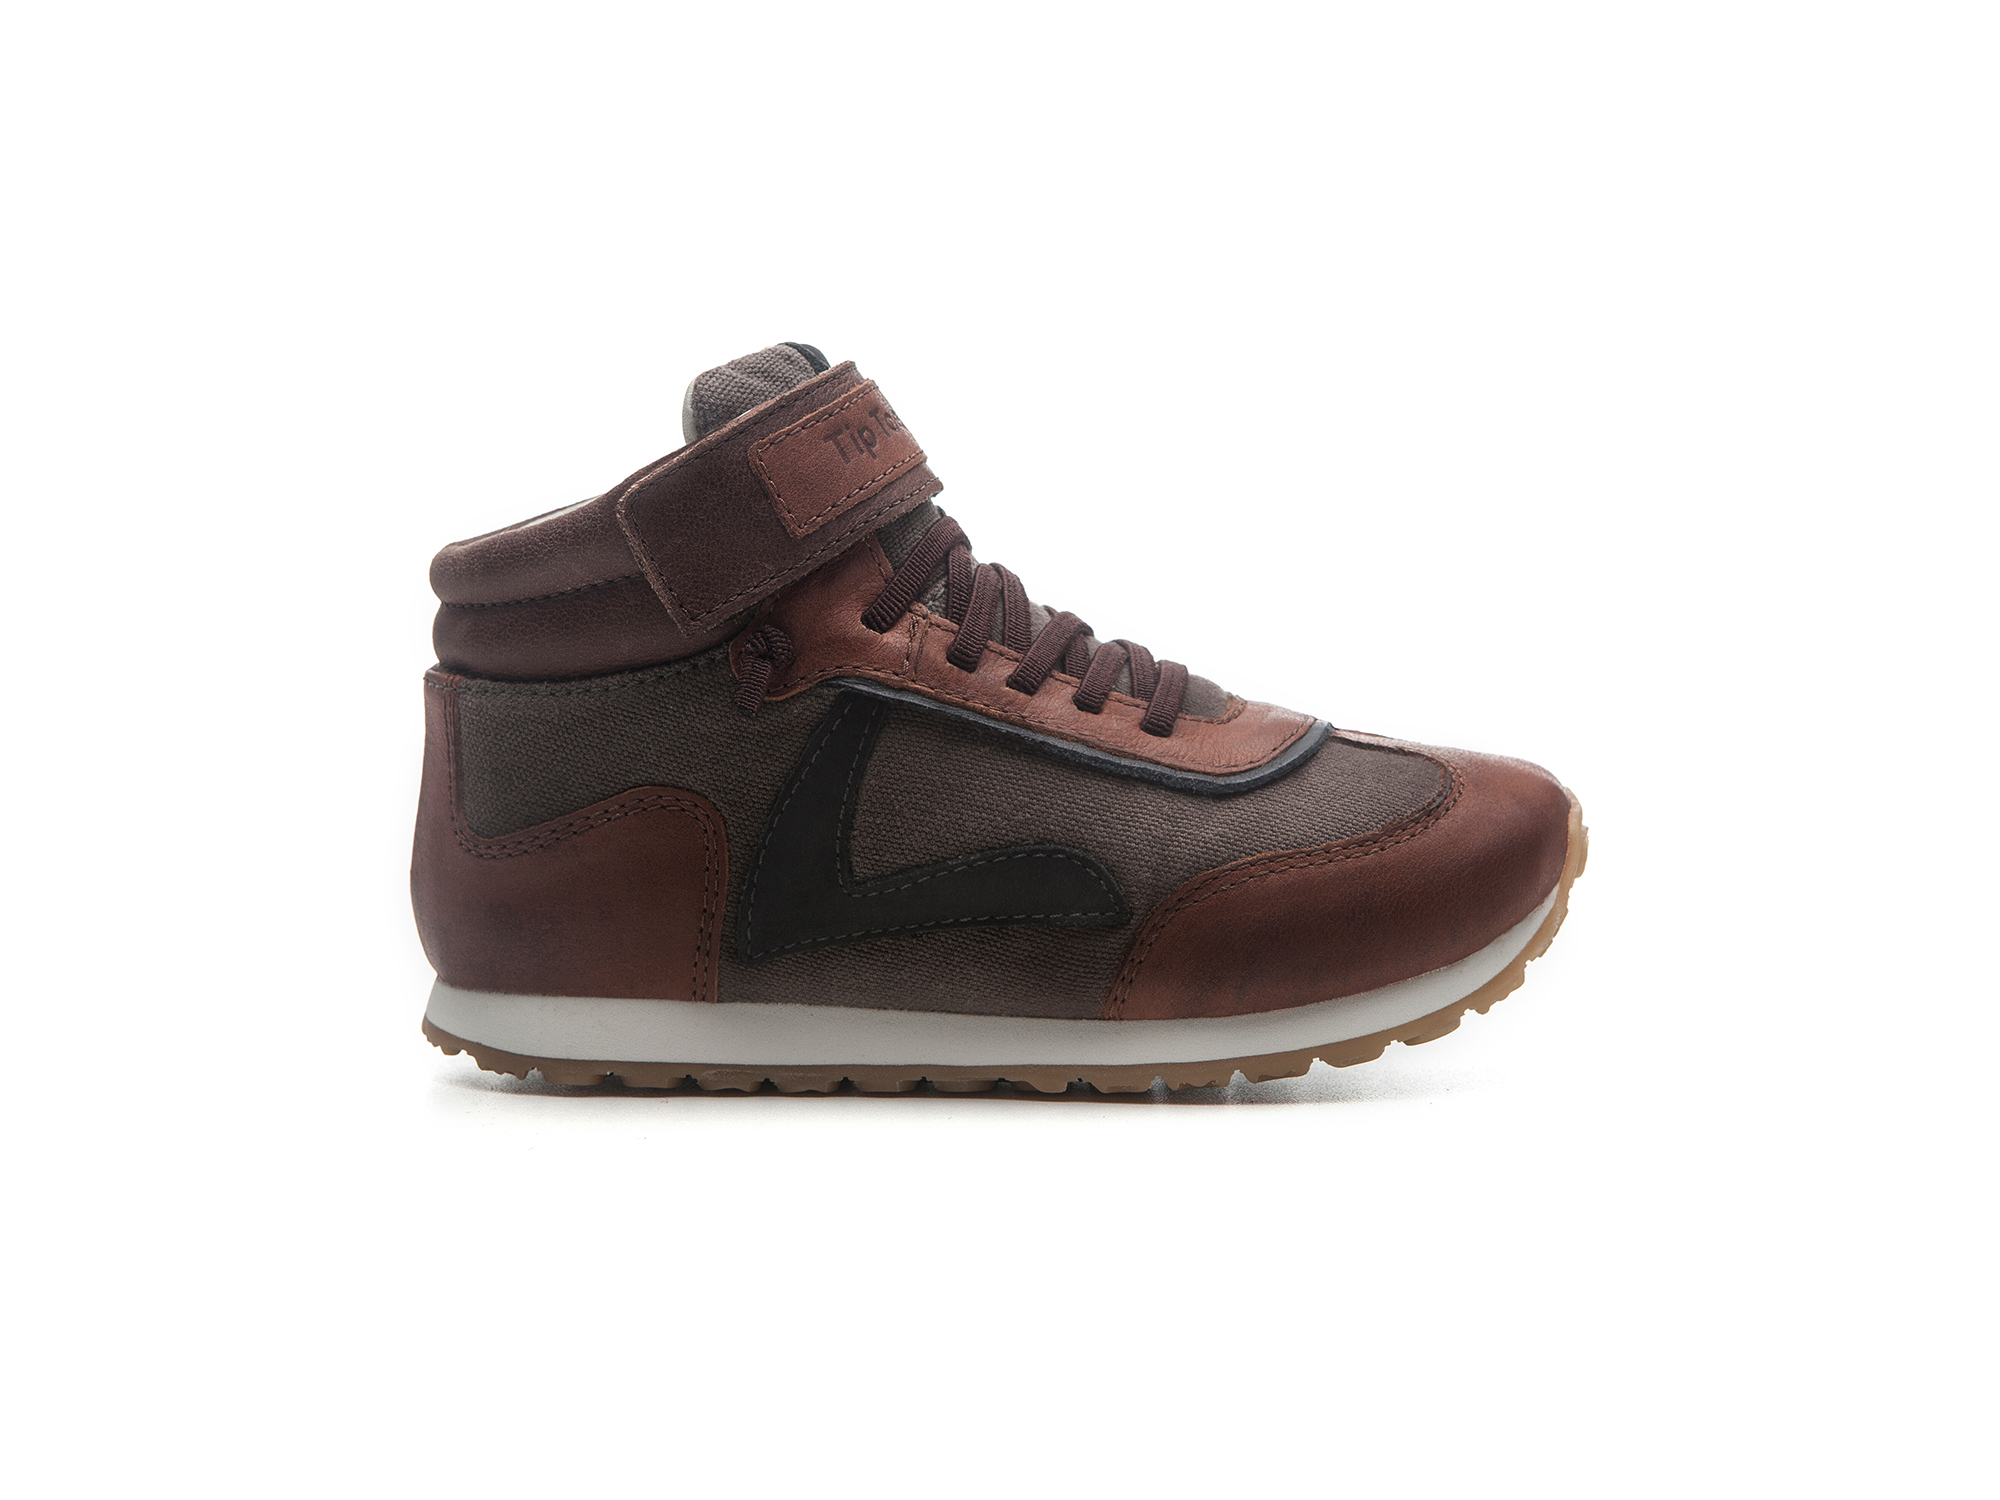 Bota T Leap D.grey Canvas/ Burning Wood/ O.brown Toddler 2 à 4 anos - 0